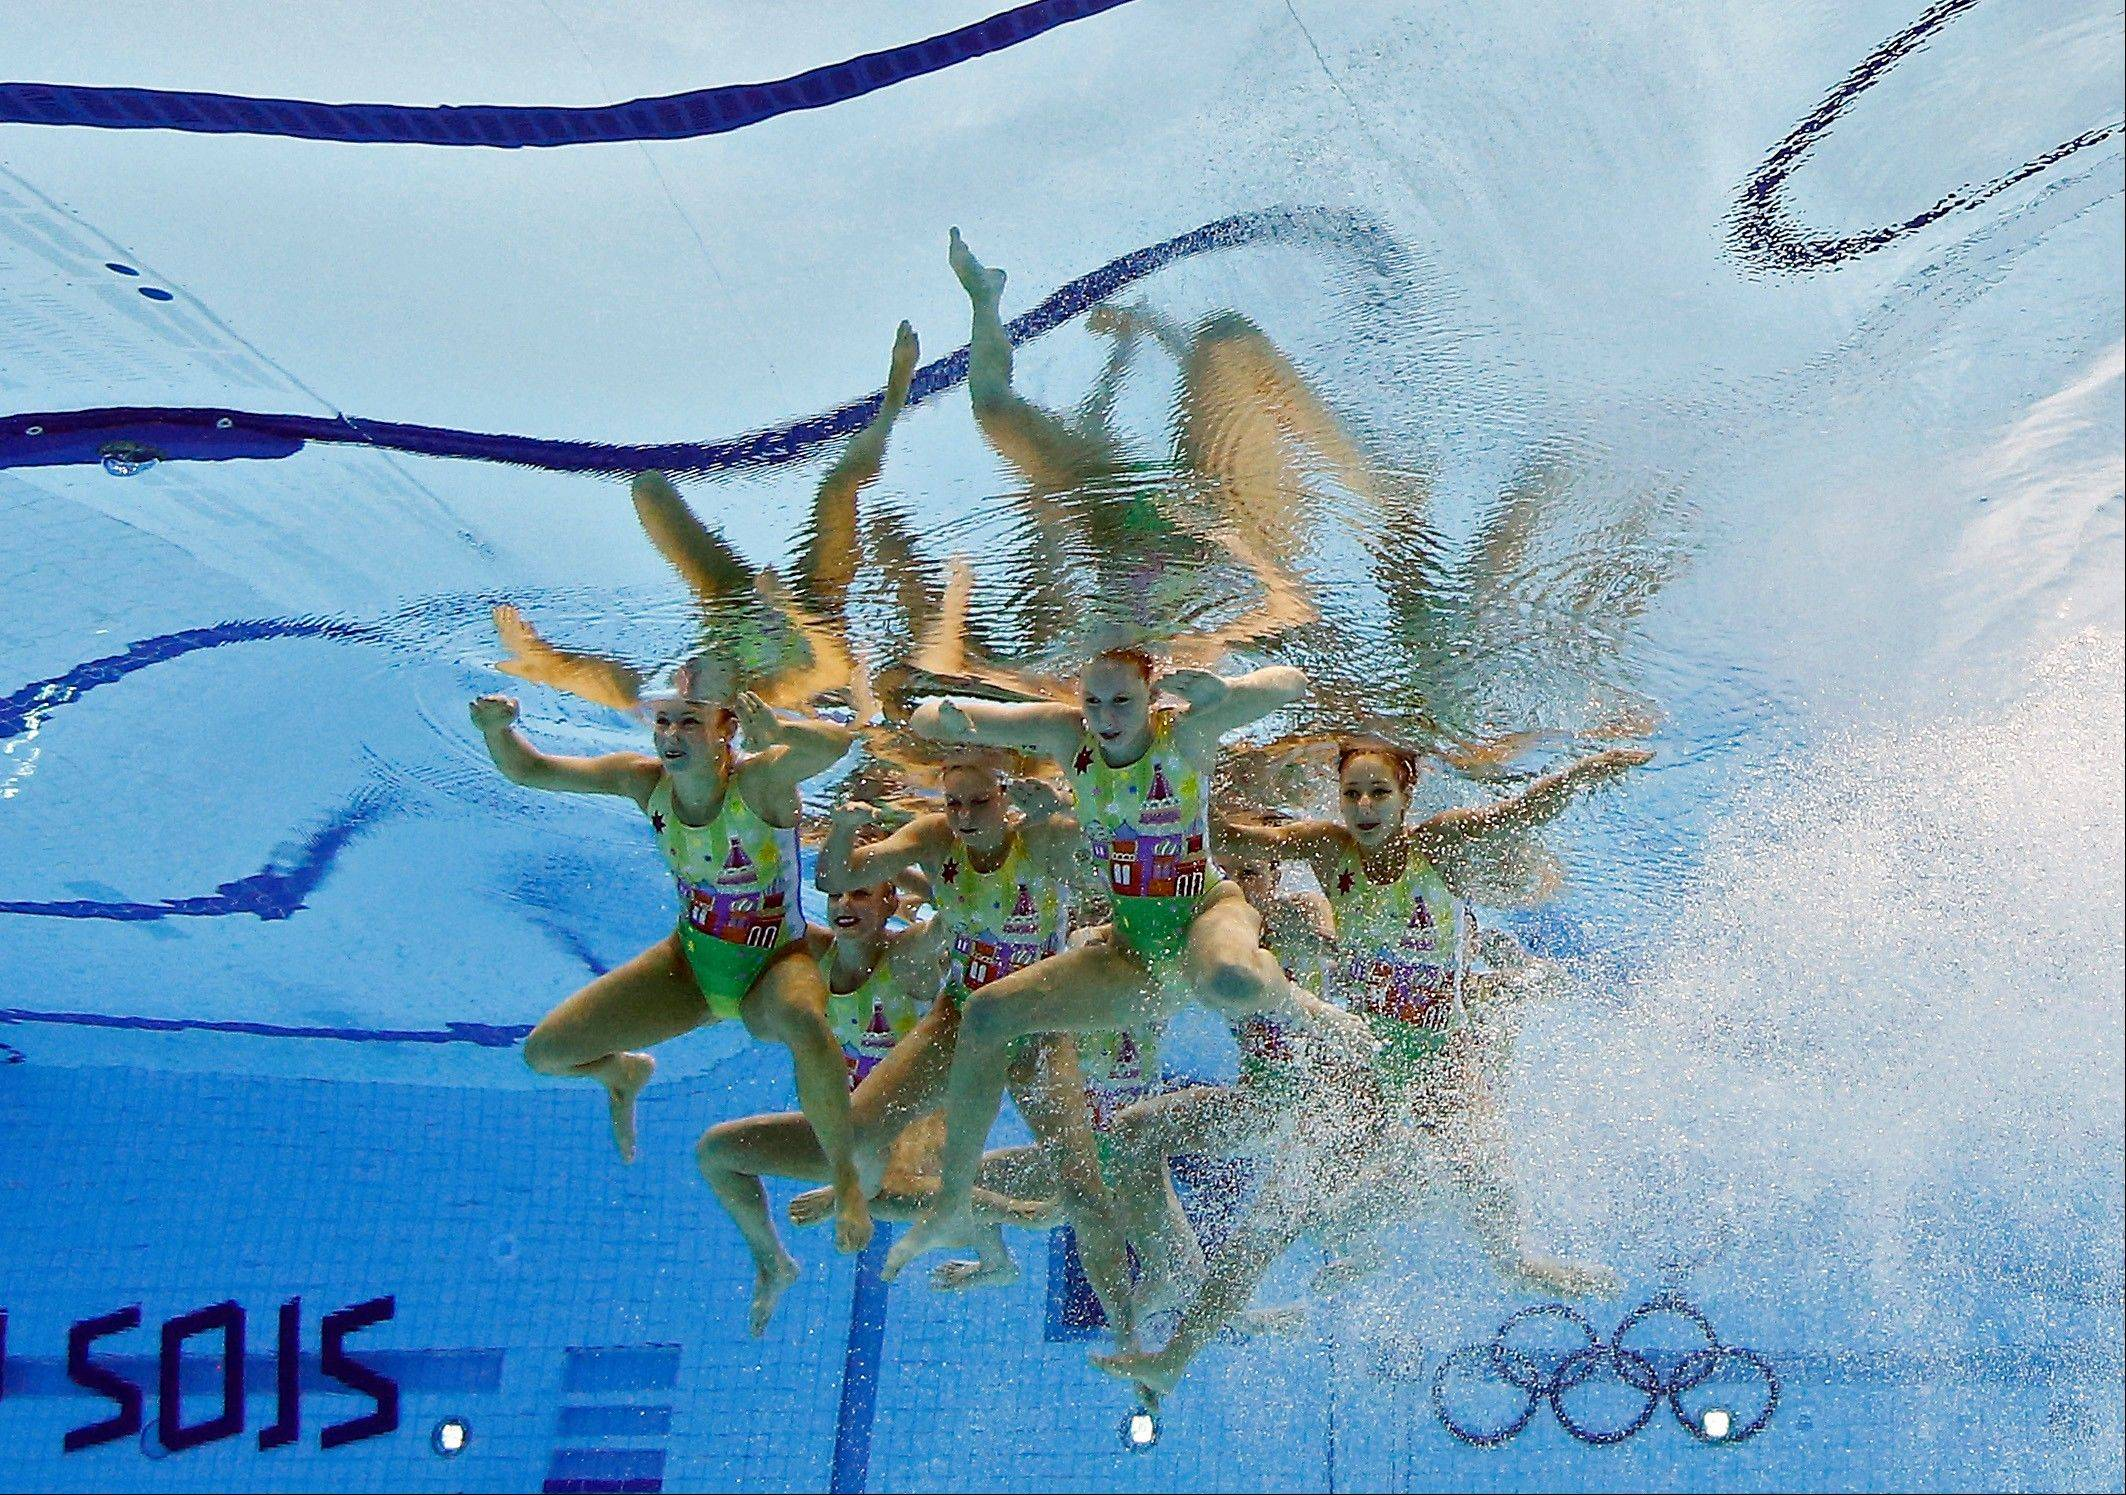 The team from Australia competes during the synchronized swimming team technical routine at the Aquatics Centre in the Olympic Park during the 2012 Summer Olympics in London, Thursday, Aug. 9, 2012.